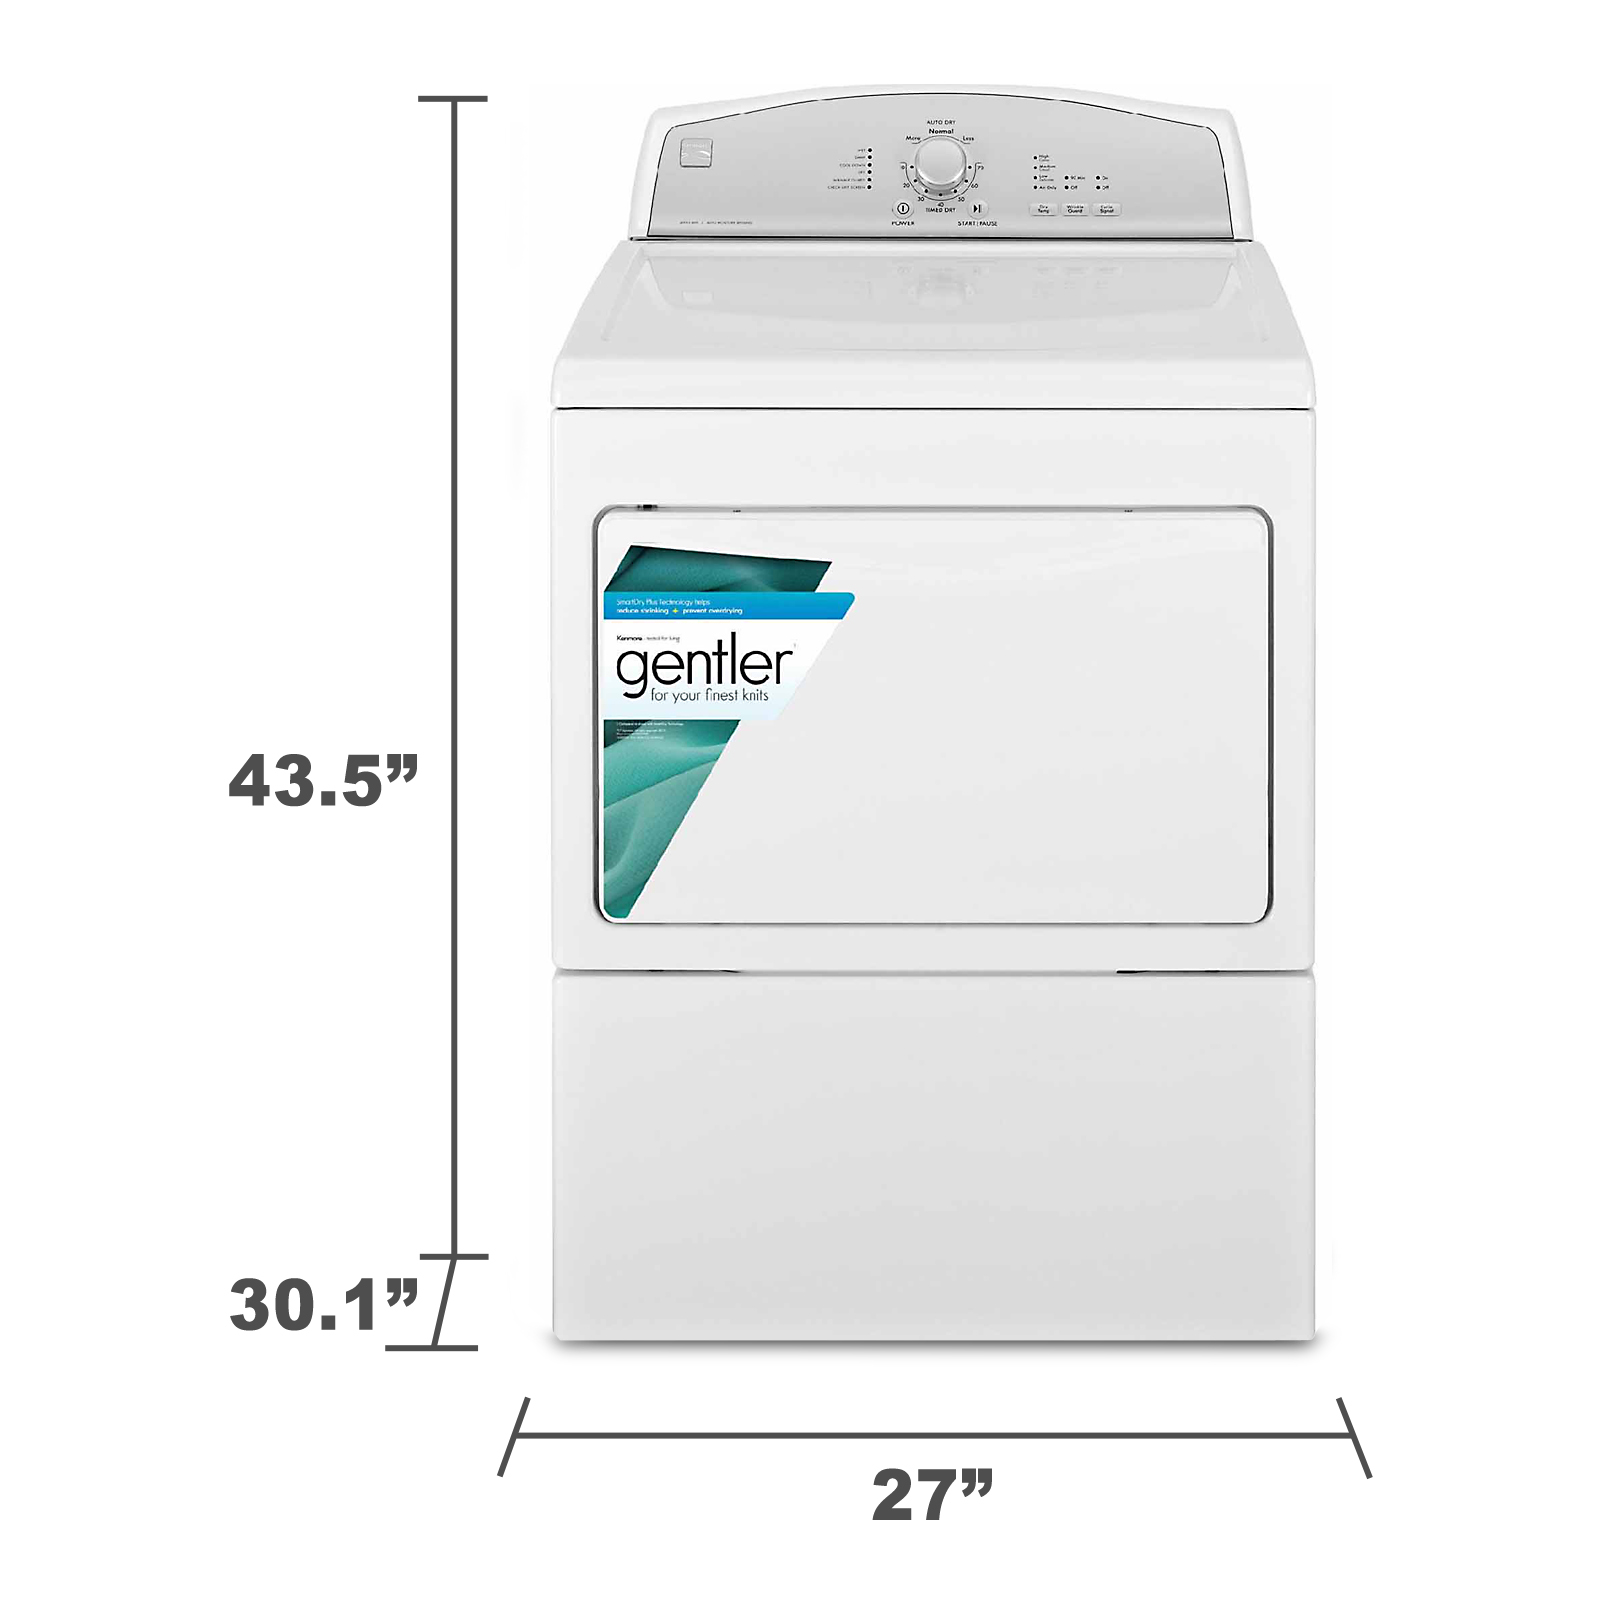 Kenmore 7.5 cu. ft. Gas Dryer w/ Heated Dryer Rack - White